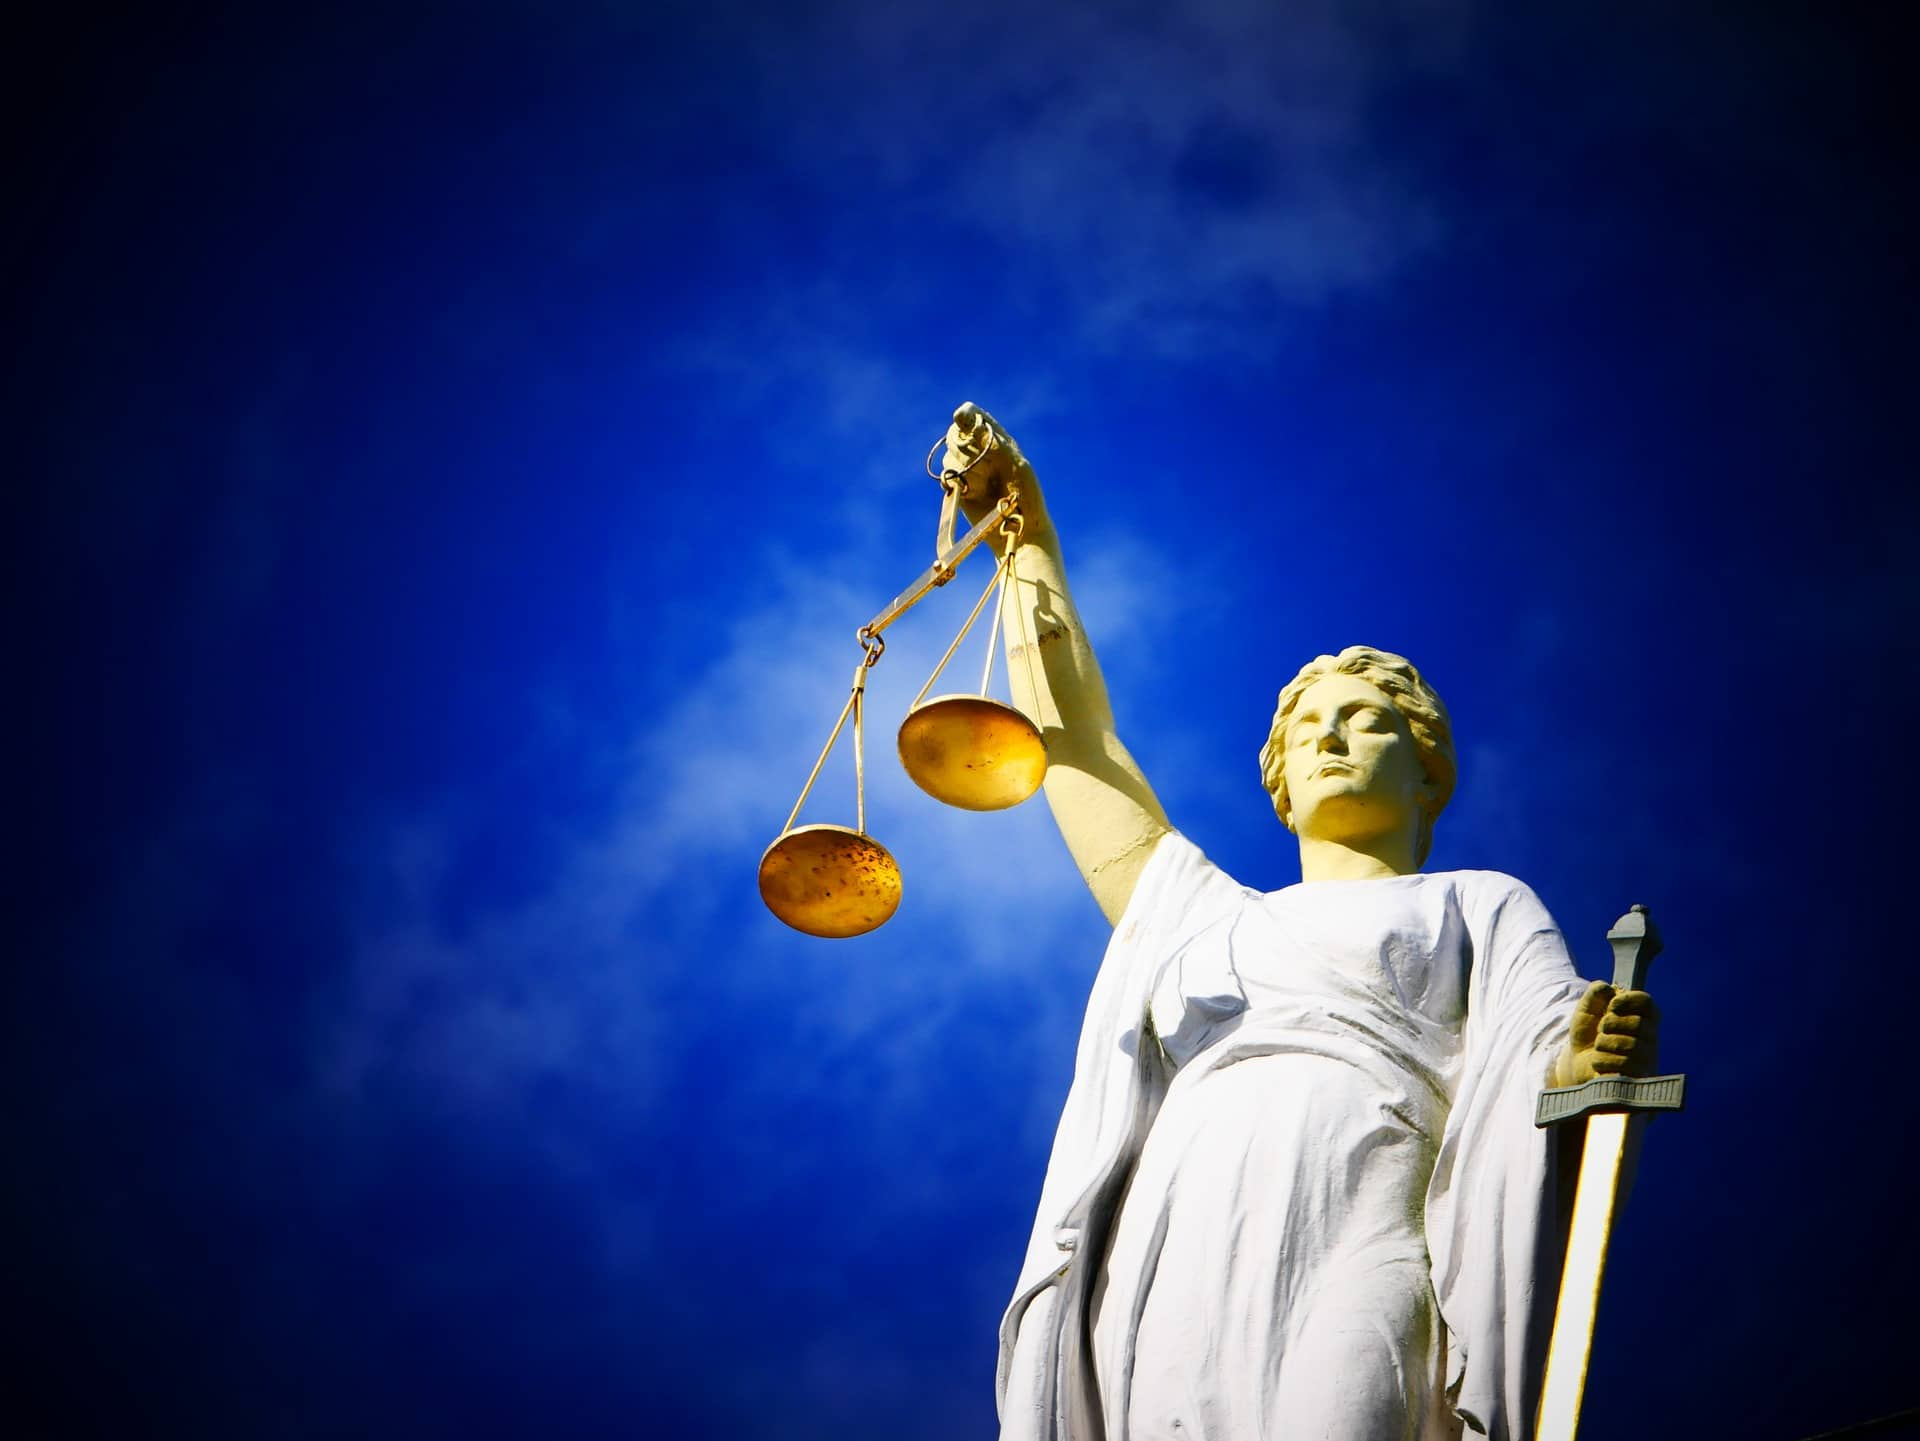 criminal offense in arizona - statue of lady justice holding scales and a sword